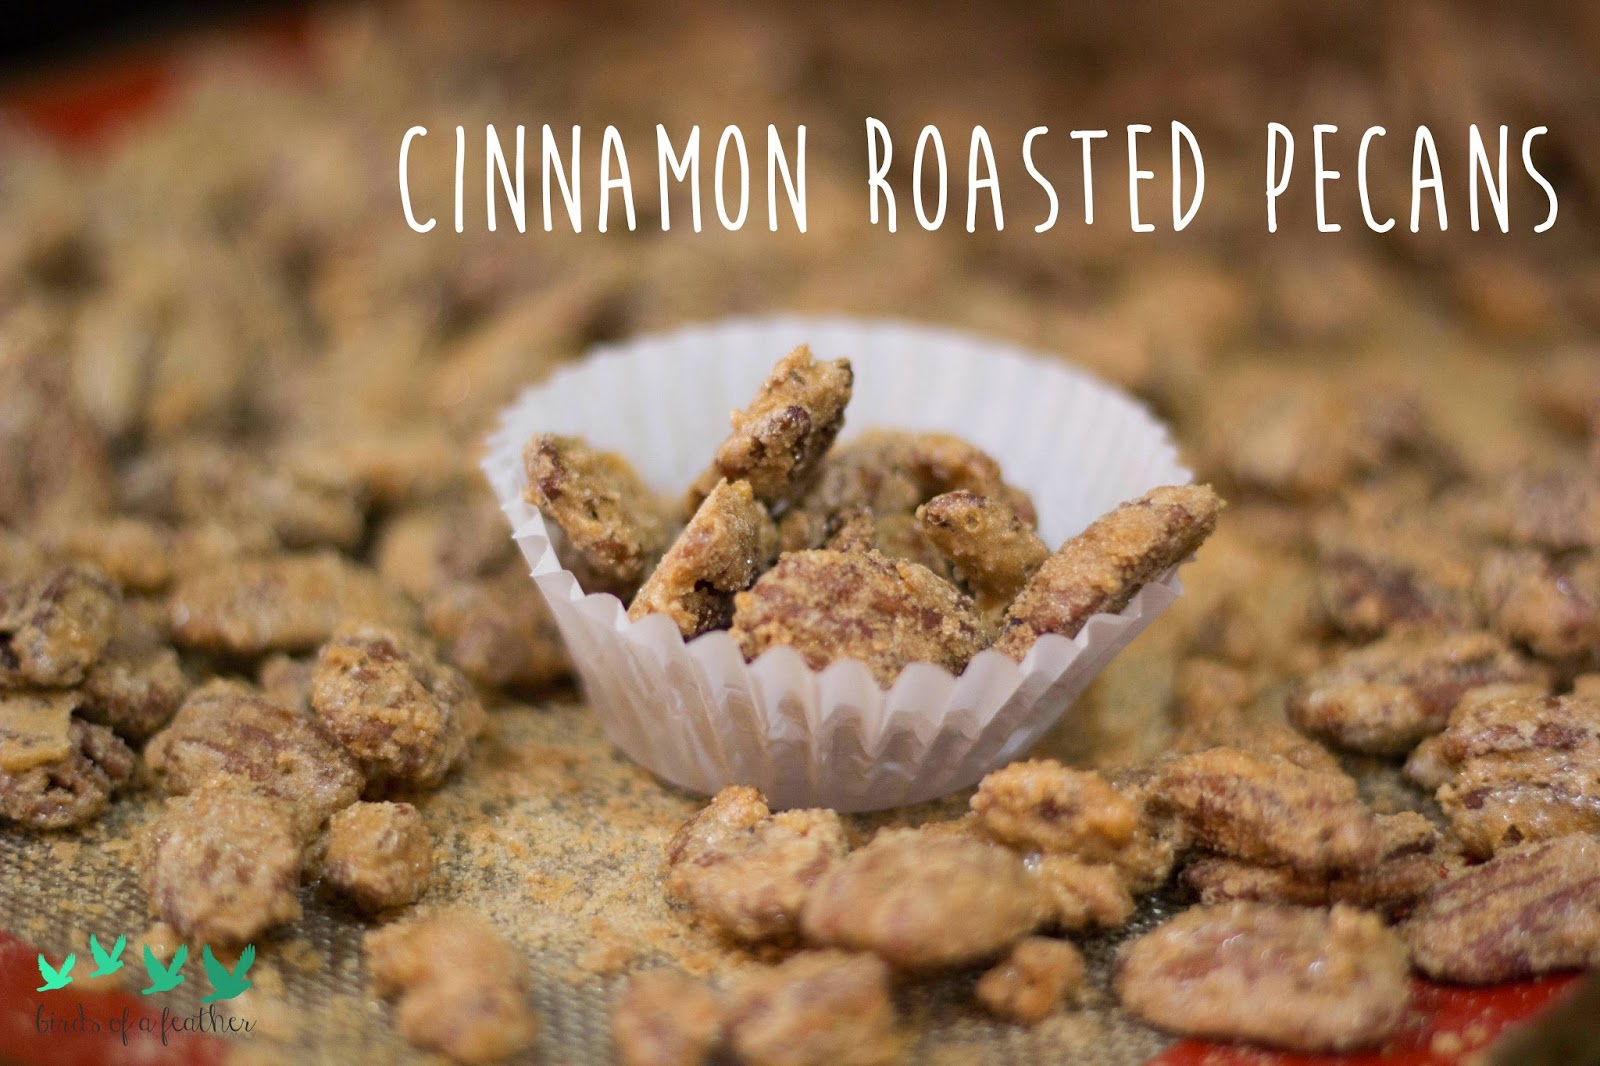 http://www.theweatheredpalate.com/2014/08/cinnamon-roasted-pecans.html